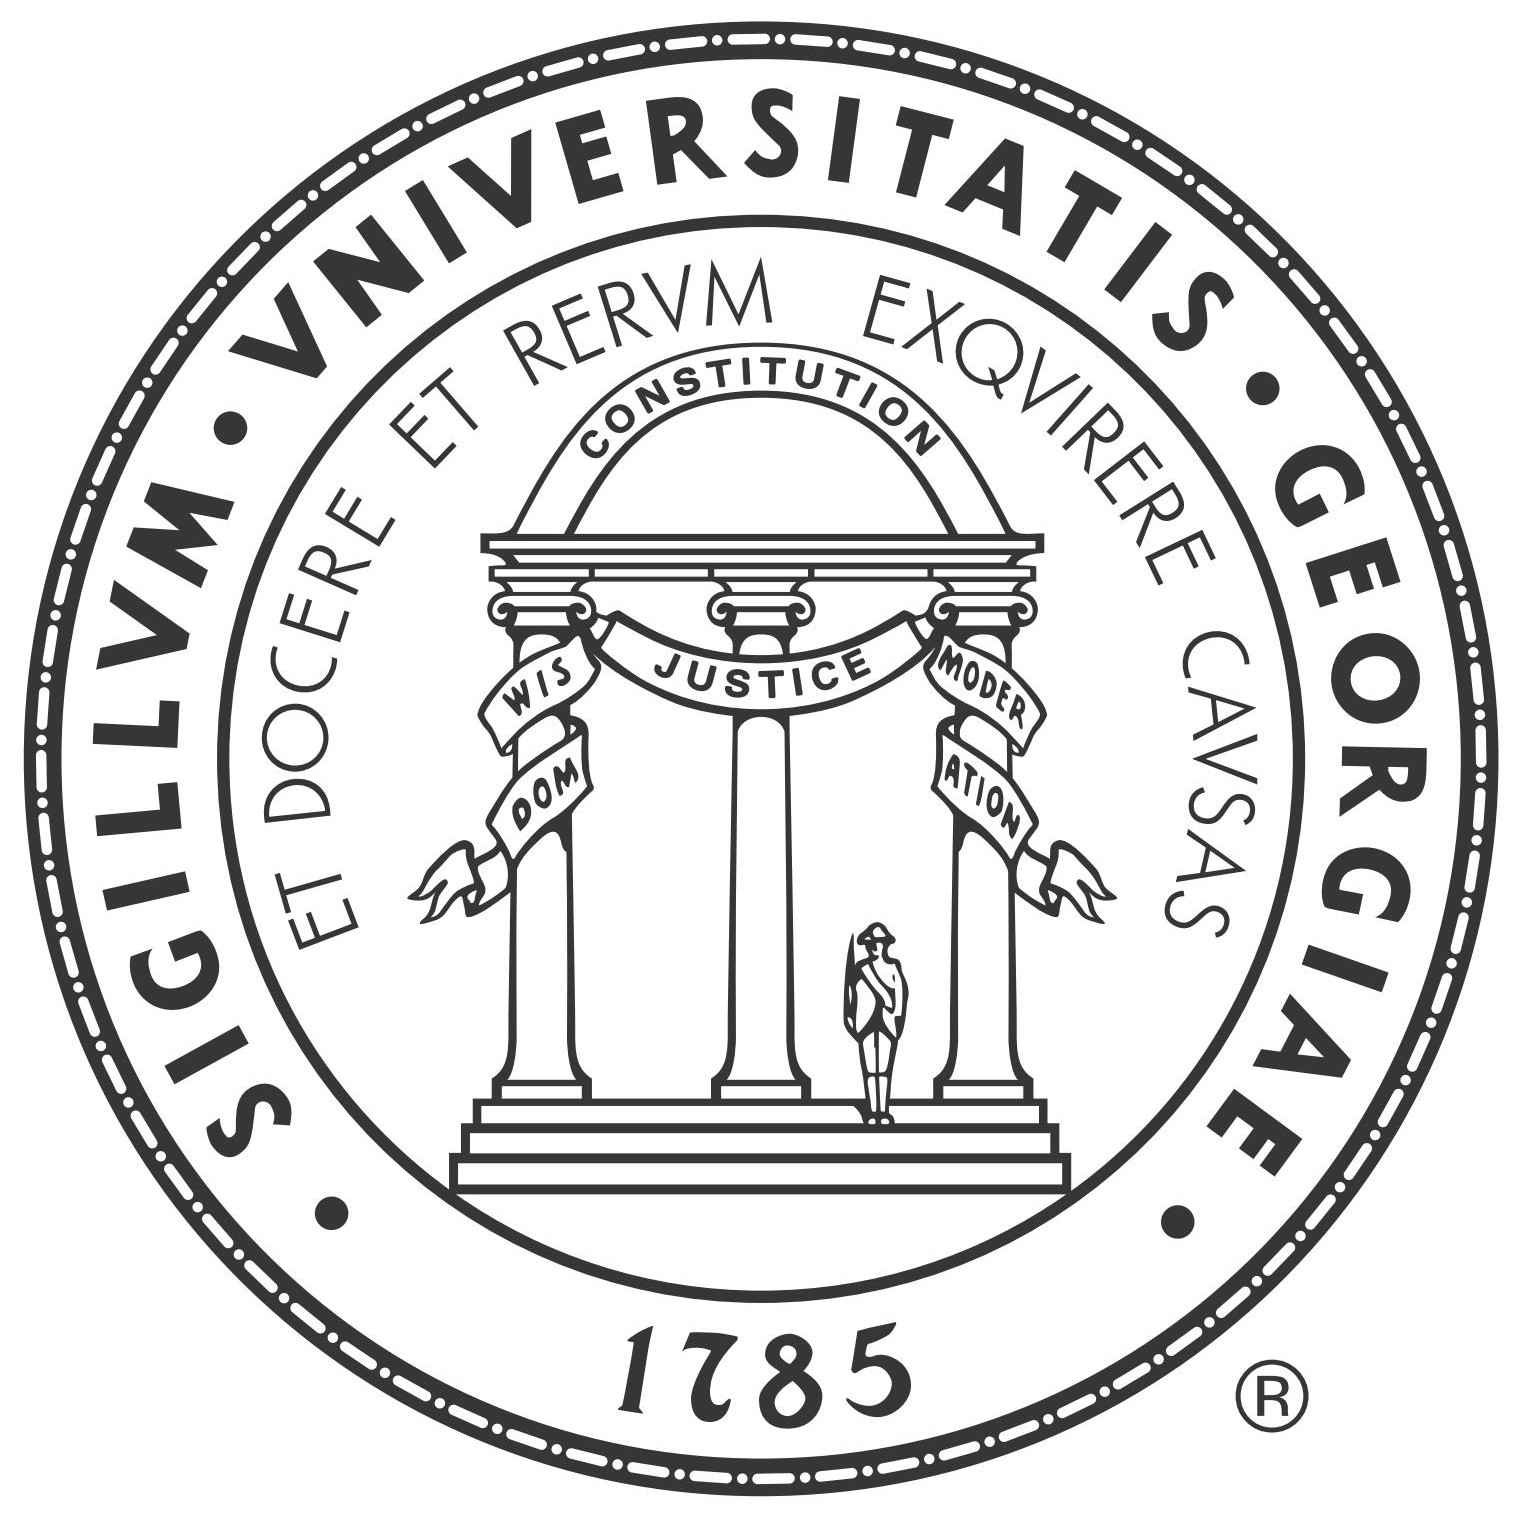 University of Georgia Seal